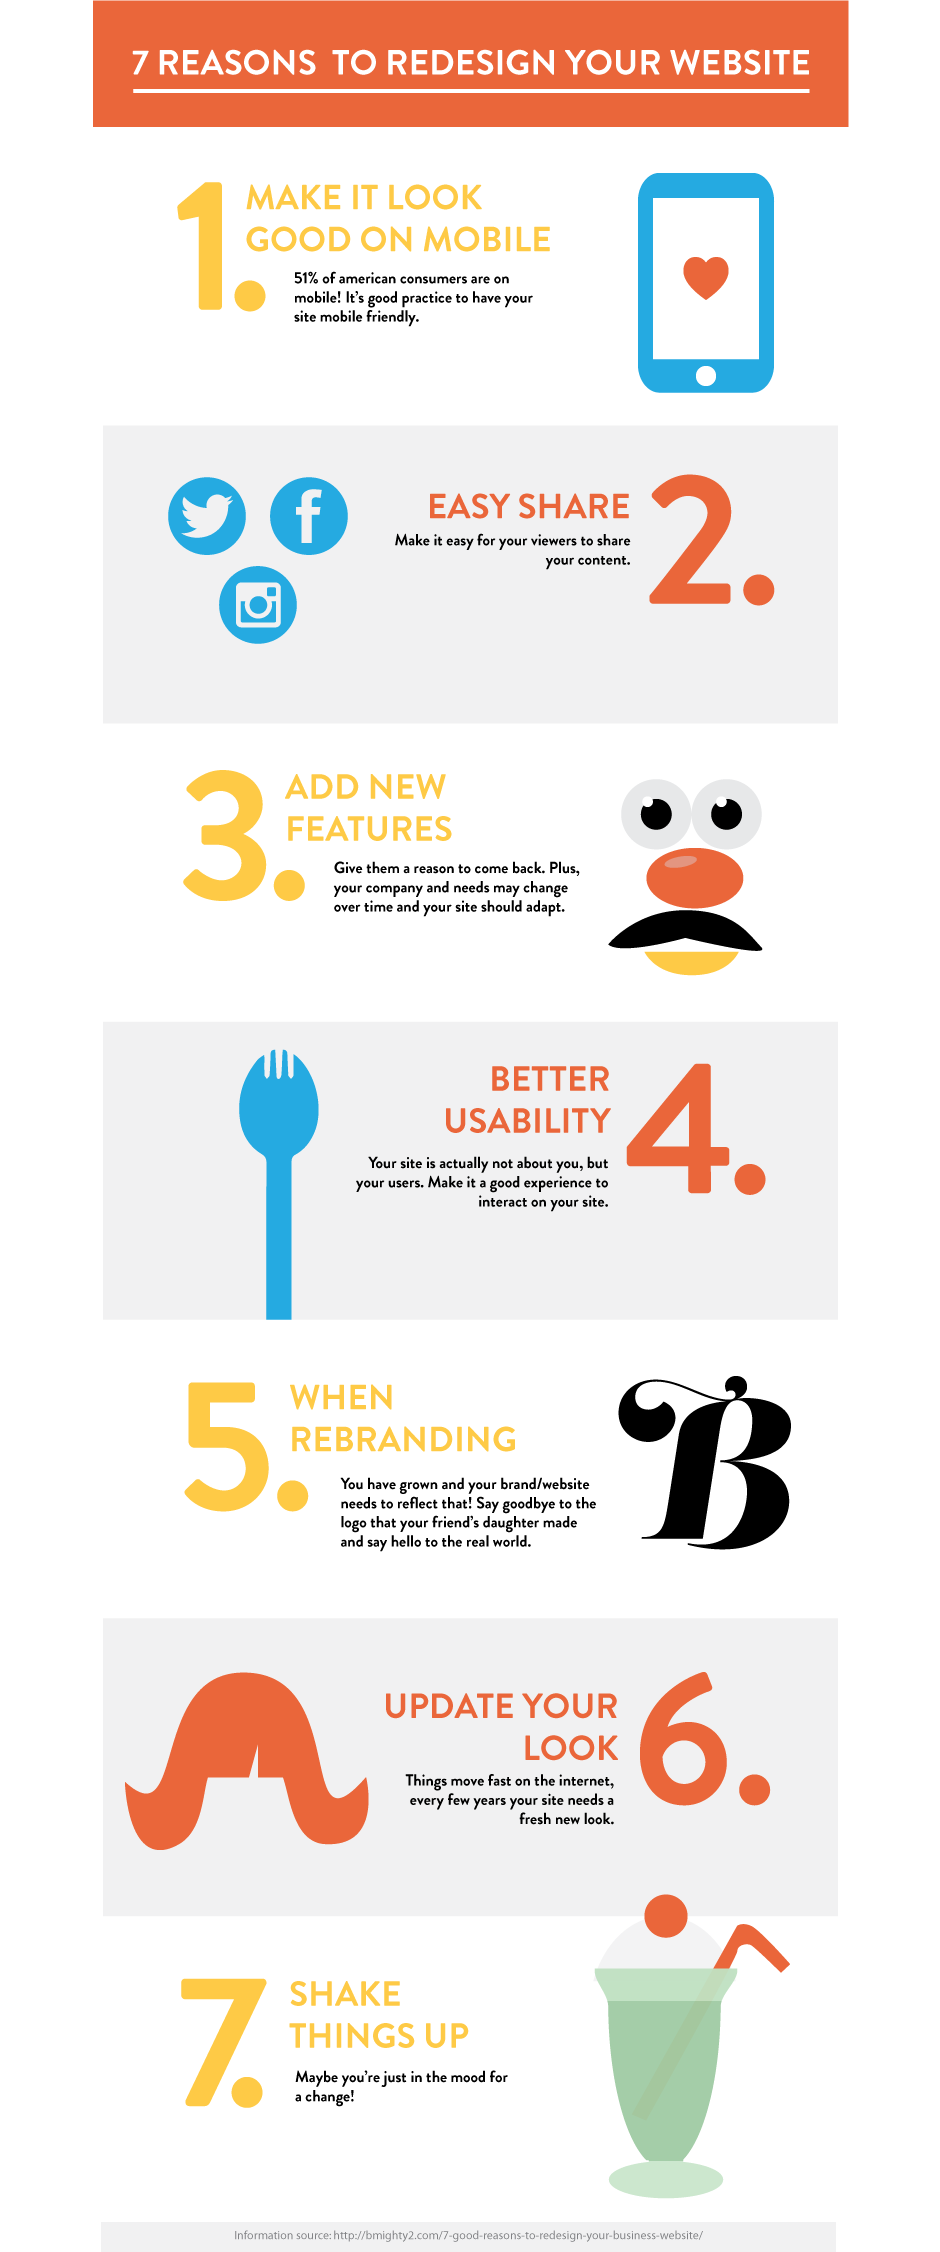 Reasons-to-Redesign-Infographic2